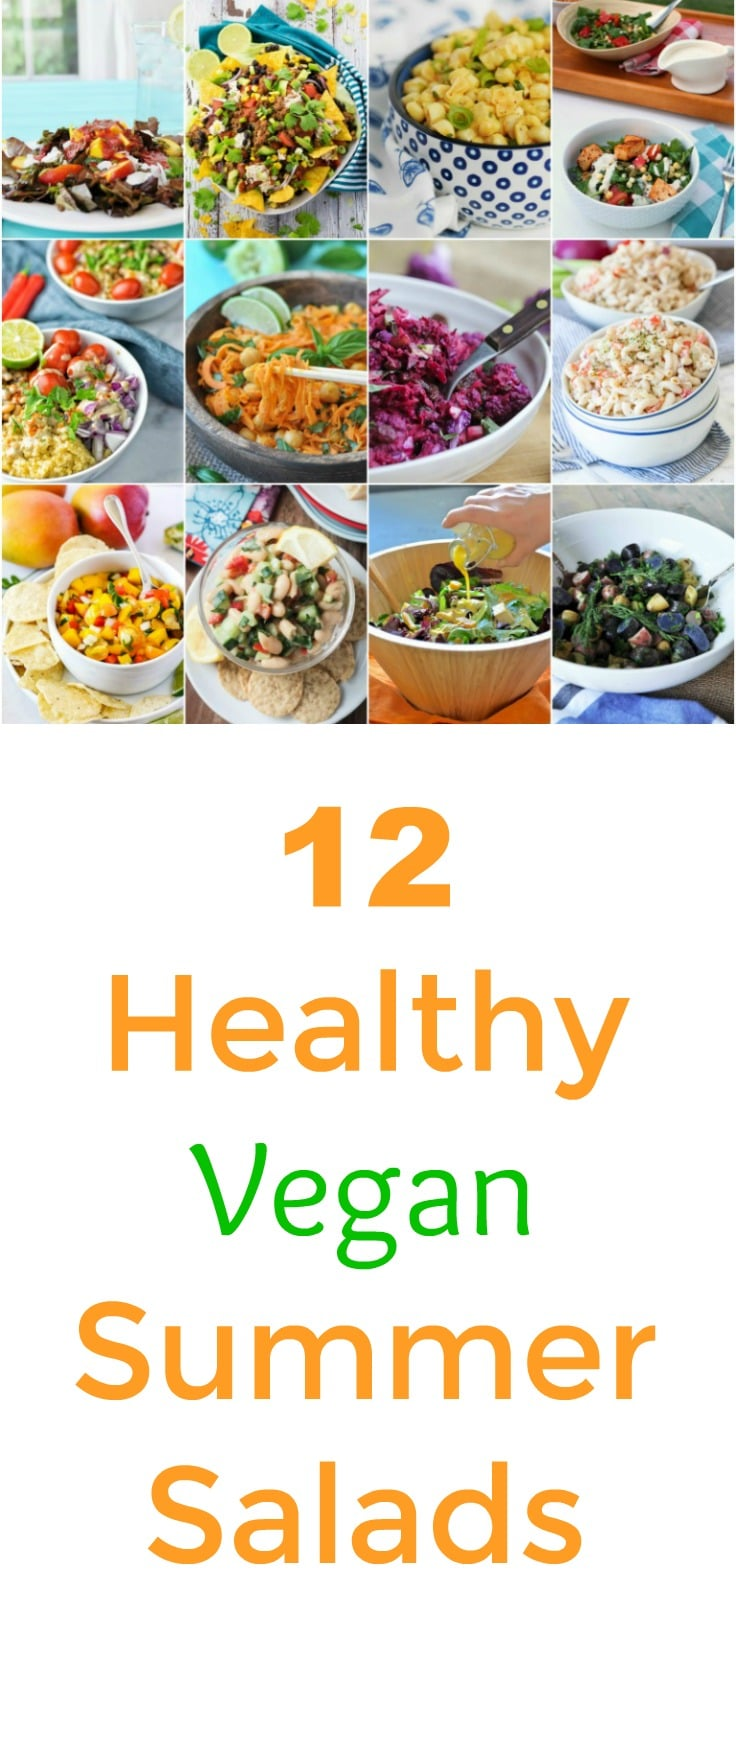 12 Healthy Summer Salads! All of them are plant-based, vegan, and perfect for Memorial Day and the 4th of July. Easy and quick to make.